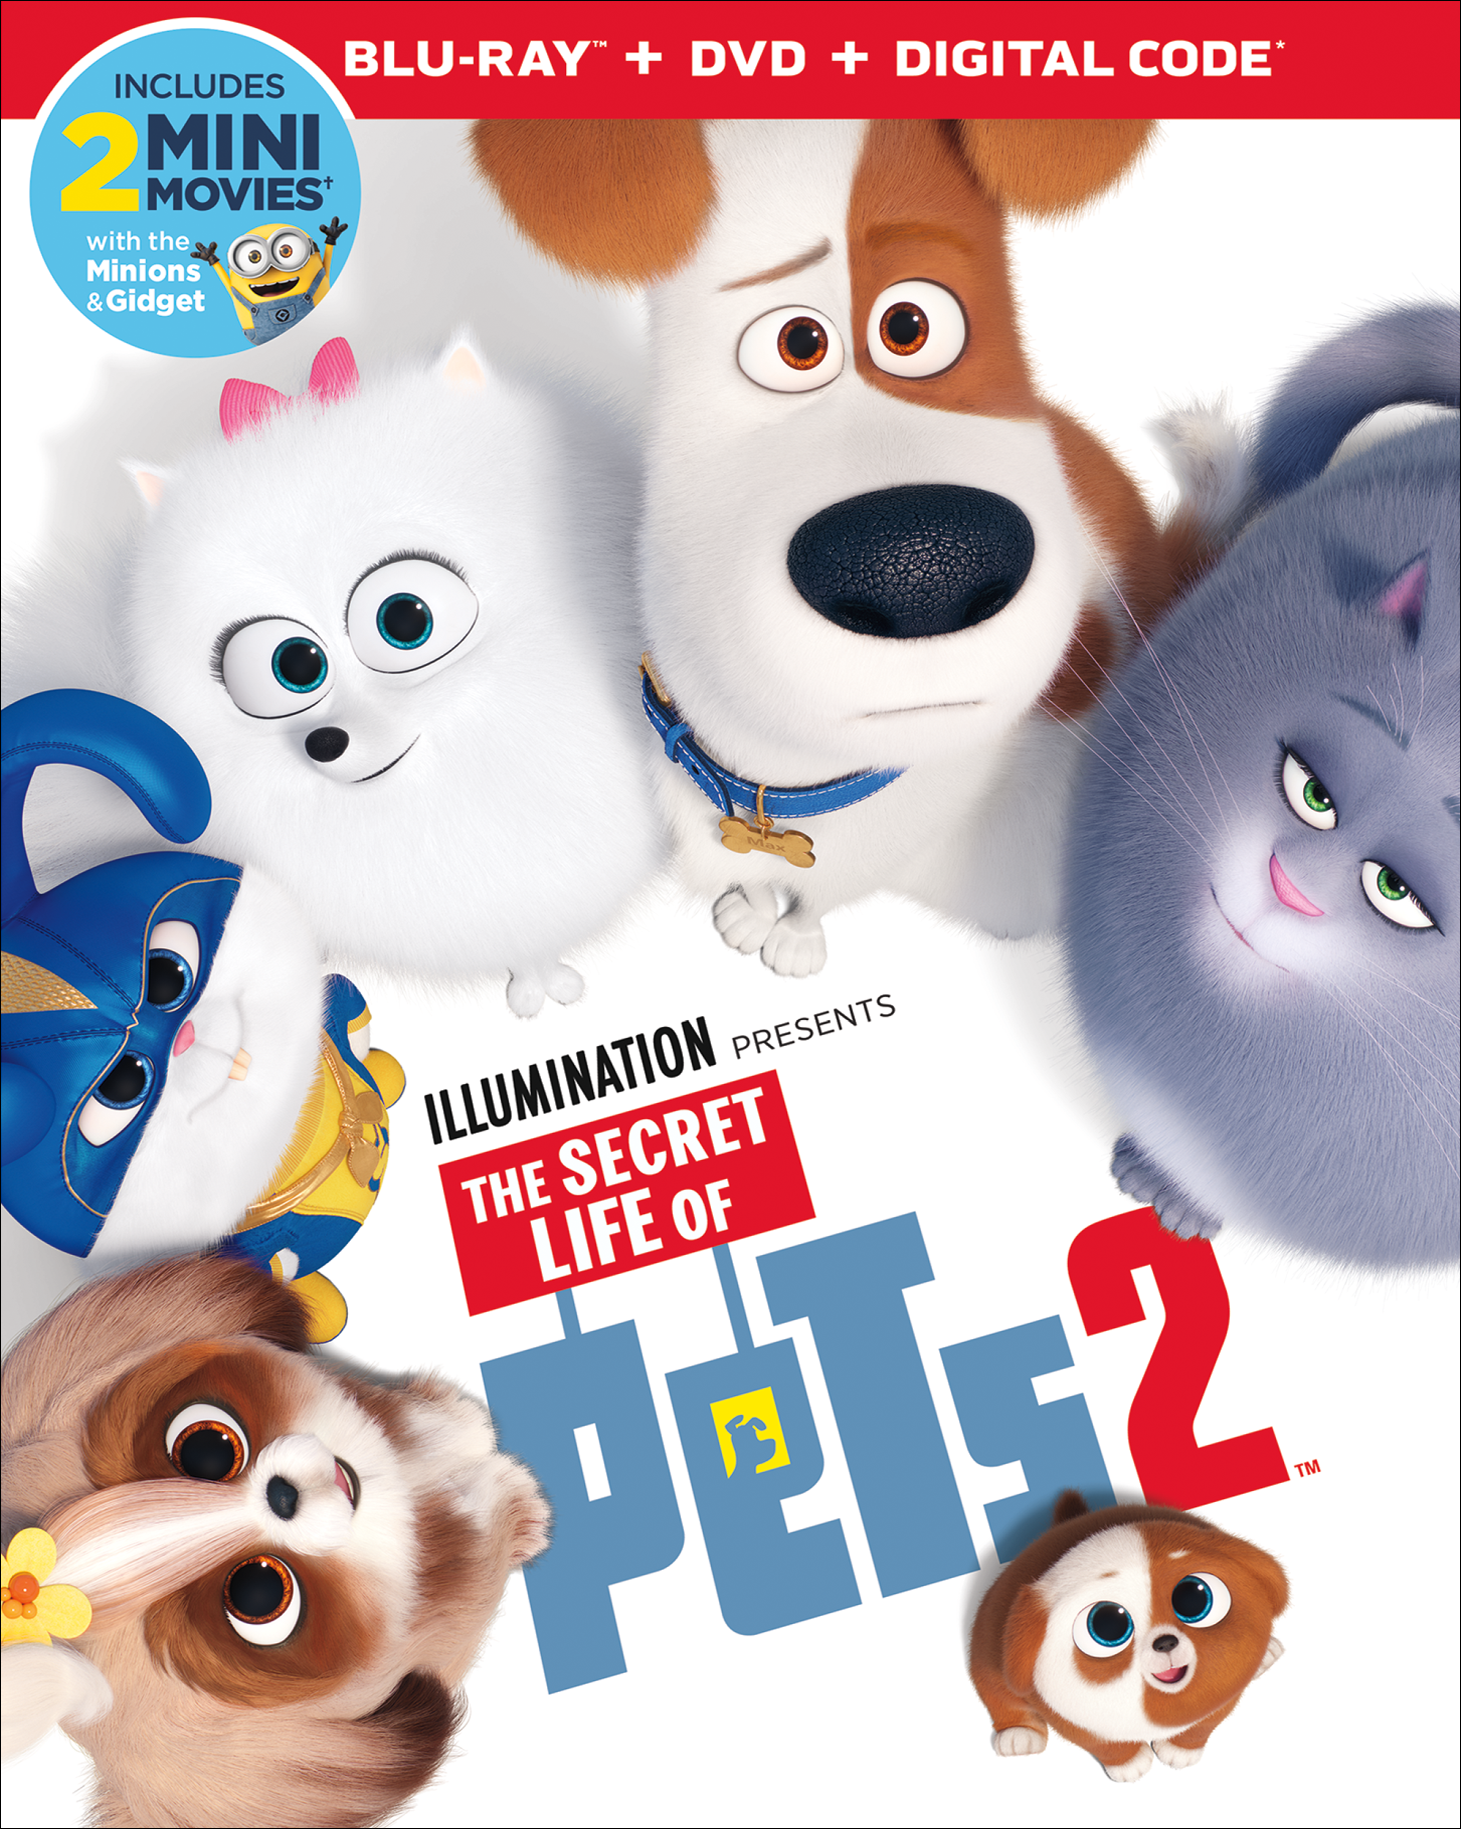 The Secret Life of Pets 2 on Bluray August 27th! {A Review + DIY Captain Snowball Ears}